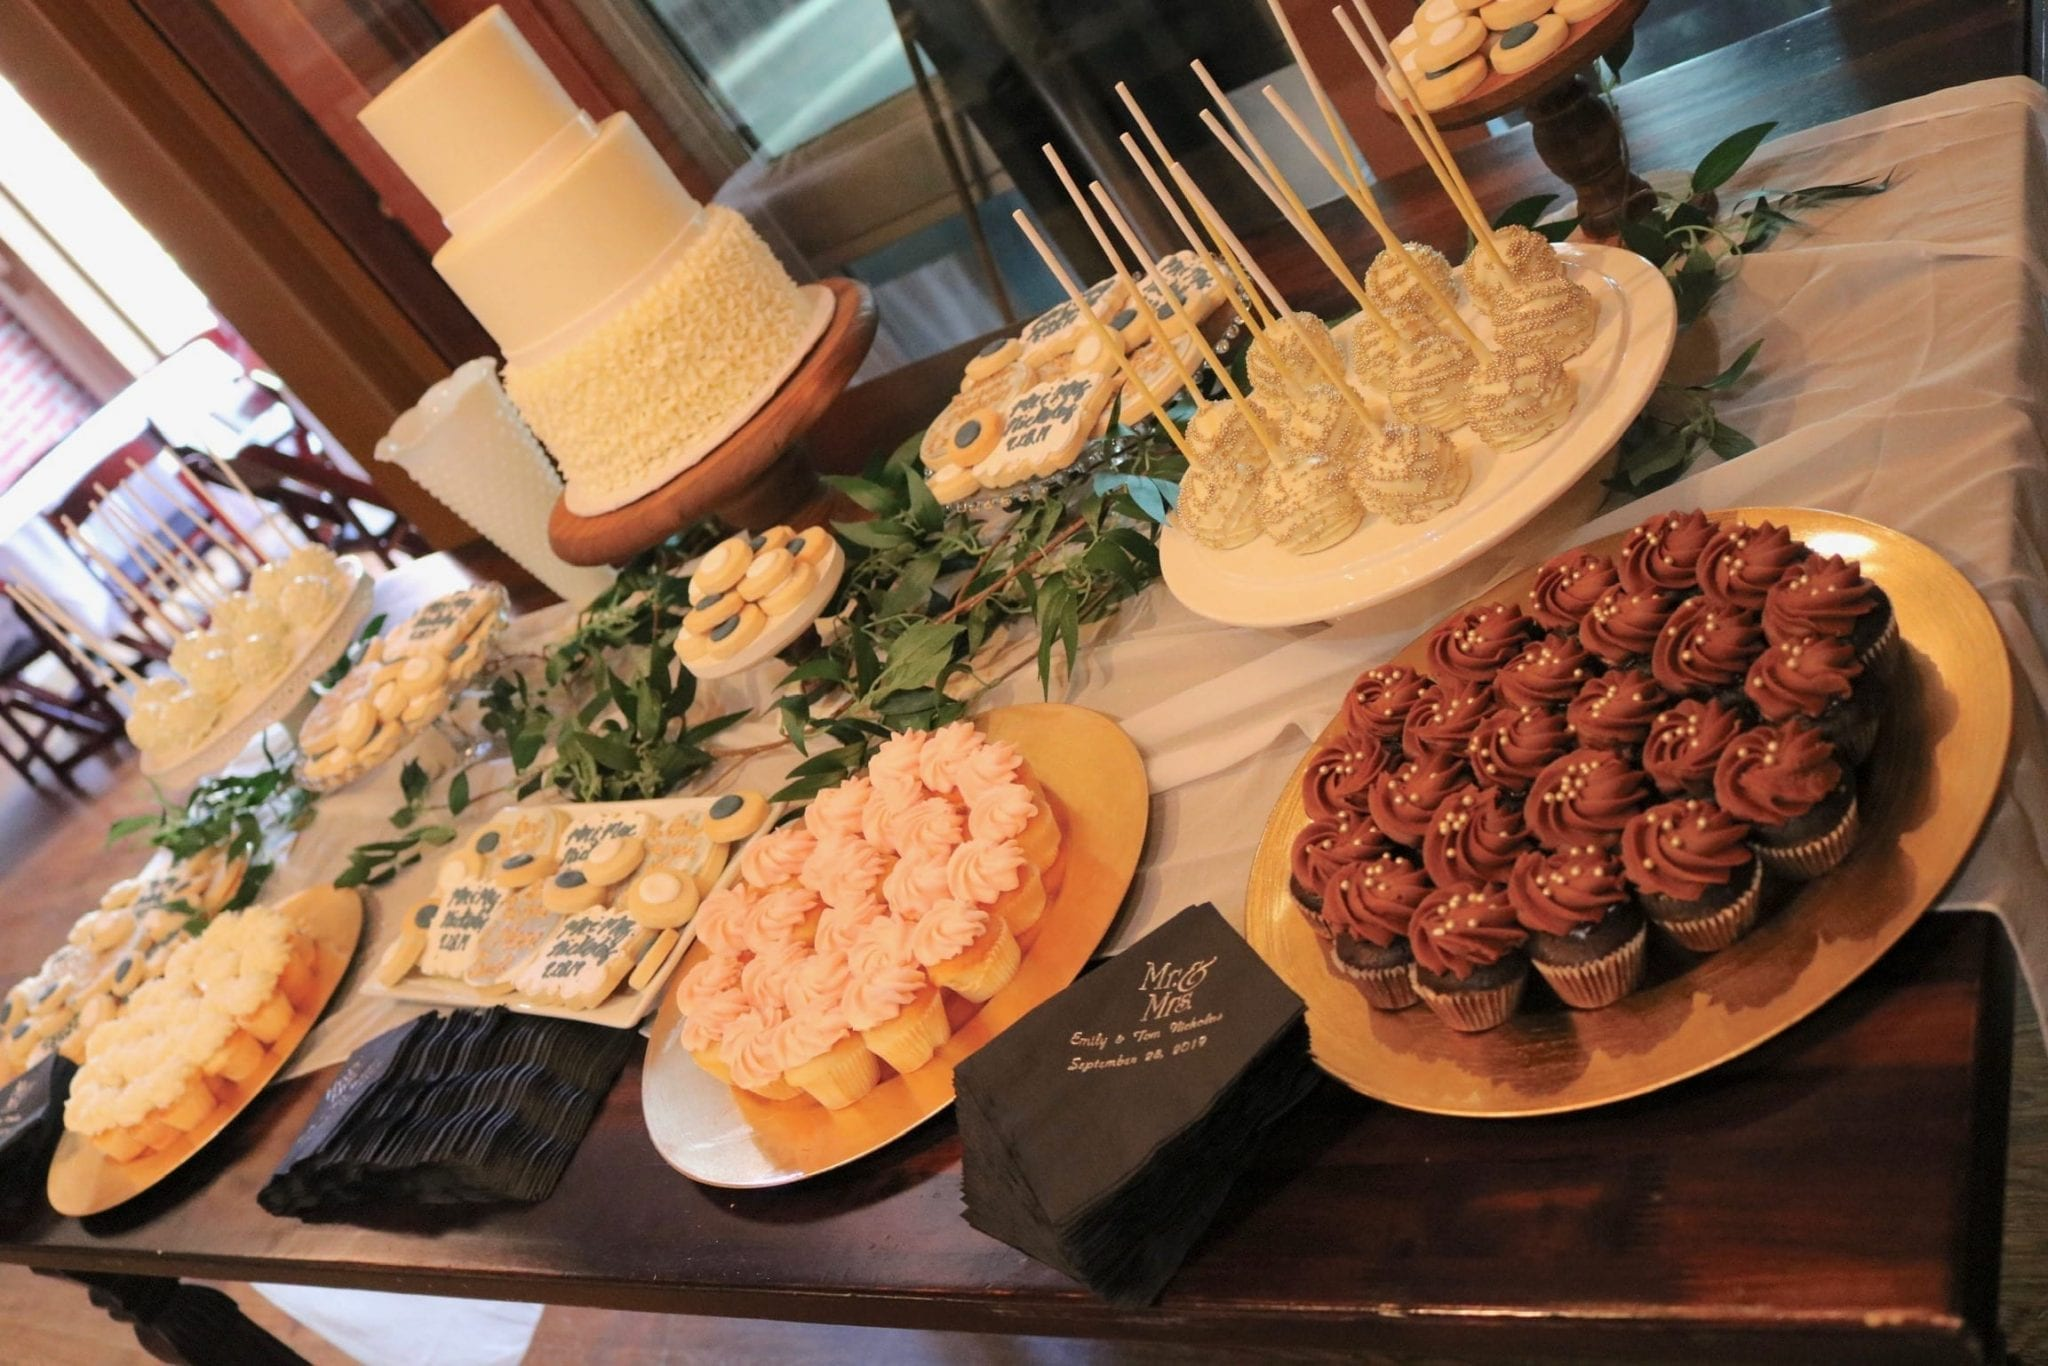 Wedding Dessert Table at Backstage Event Center | 3 Sweet Girls Cakery